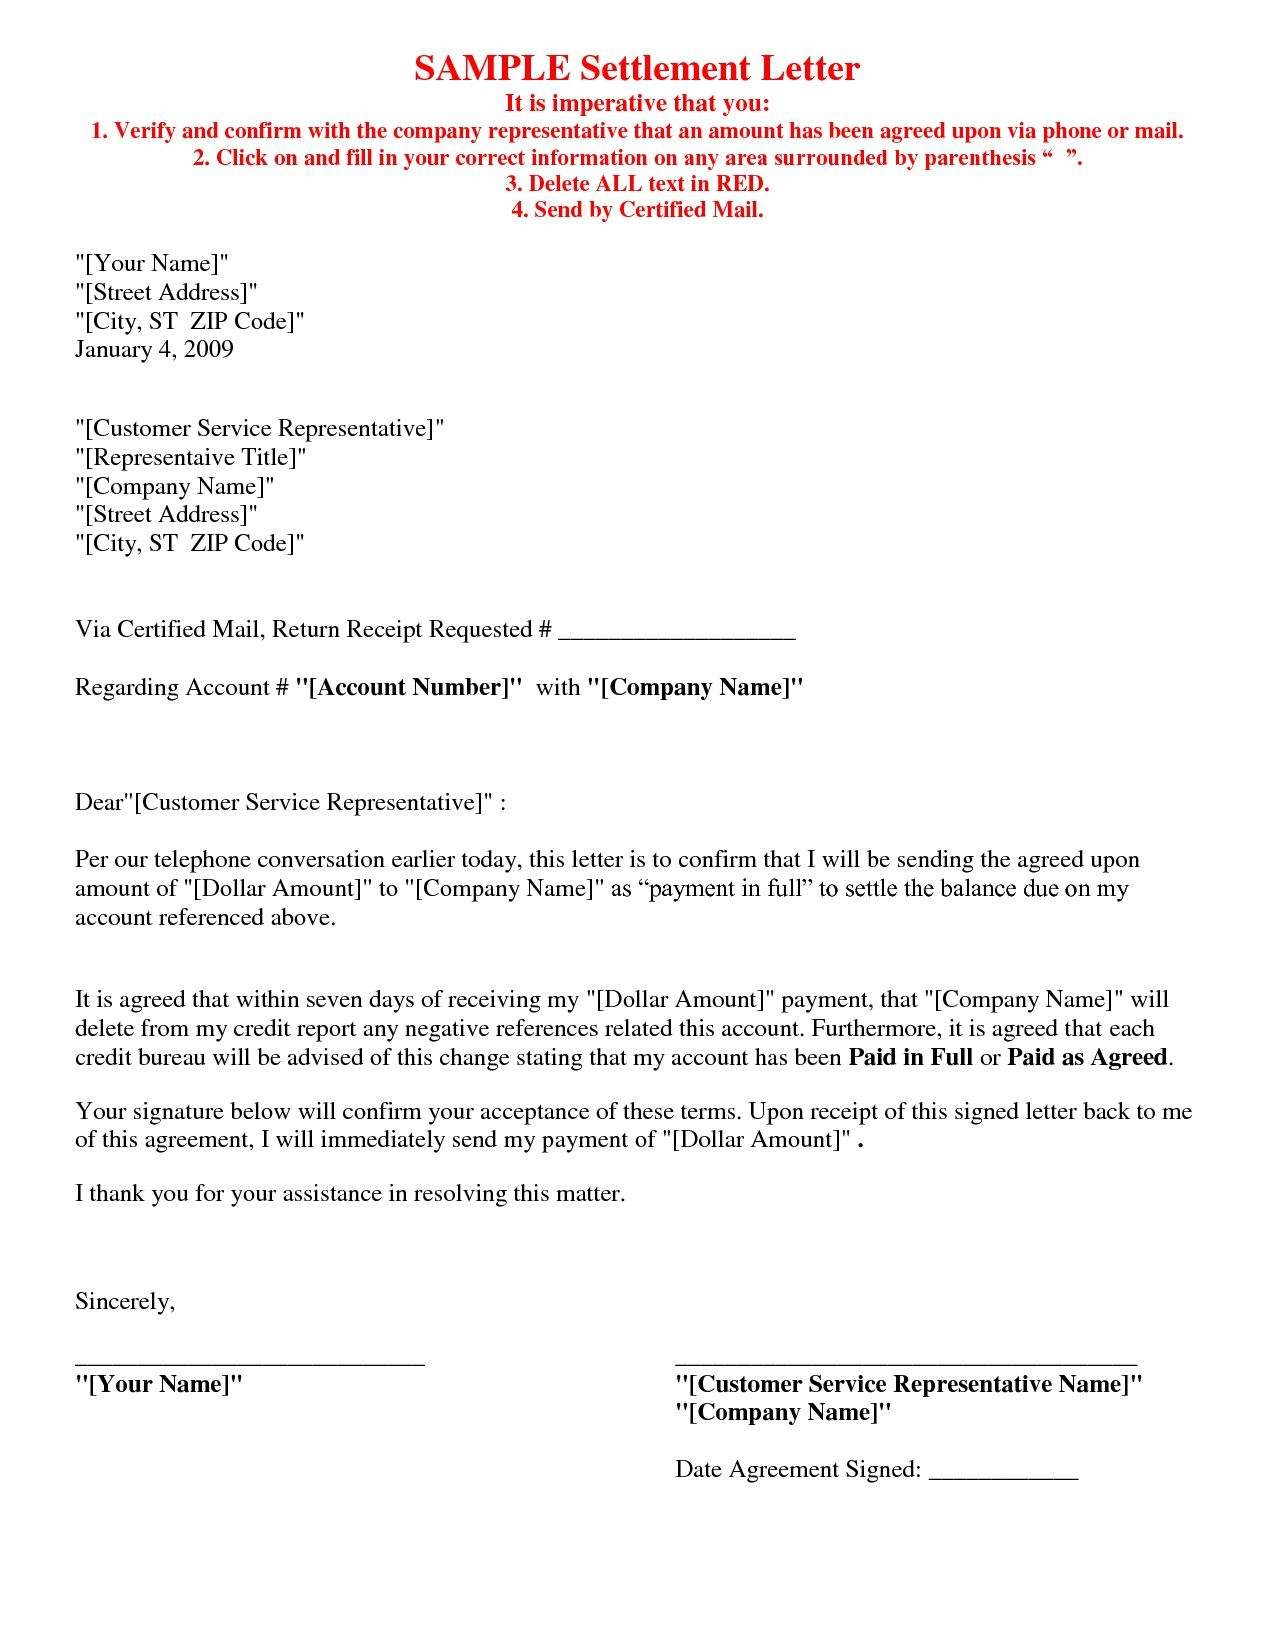 008 Outstanding Sample Letter Of Agreement Template Design  For A In Project PrepareFull